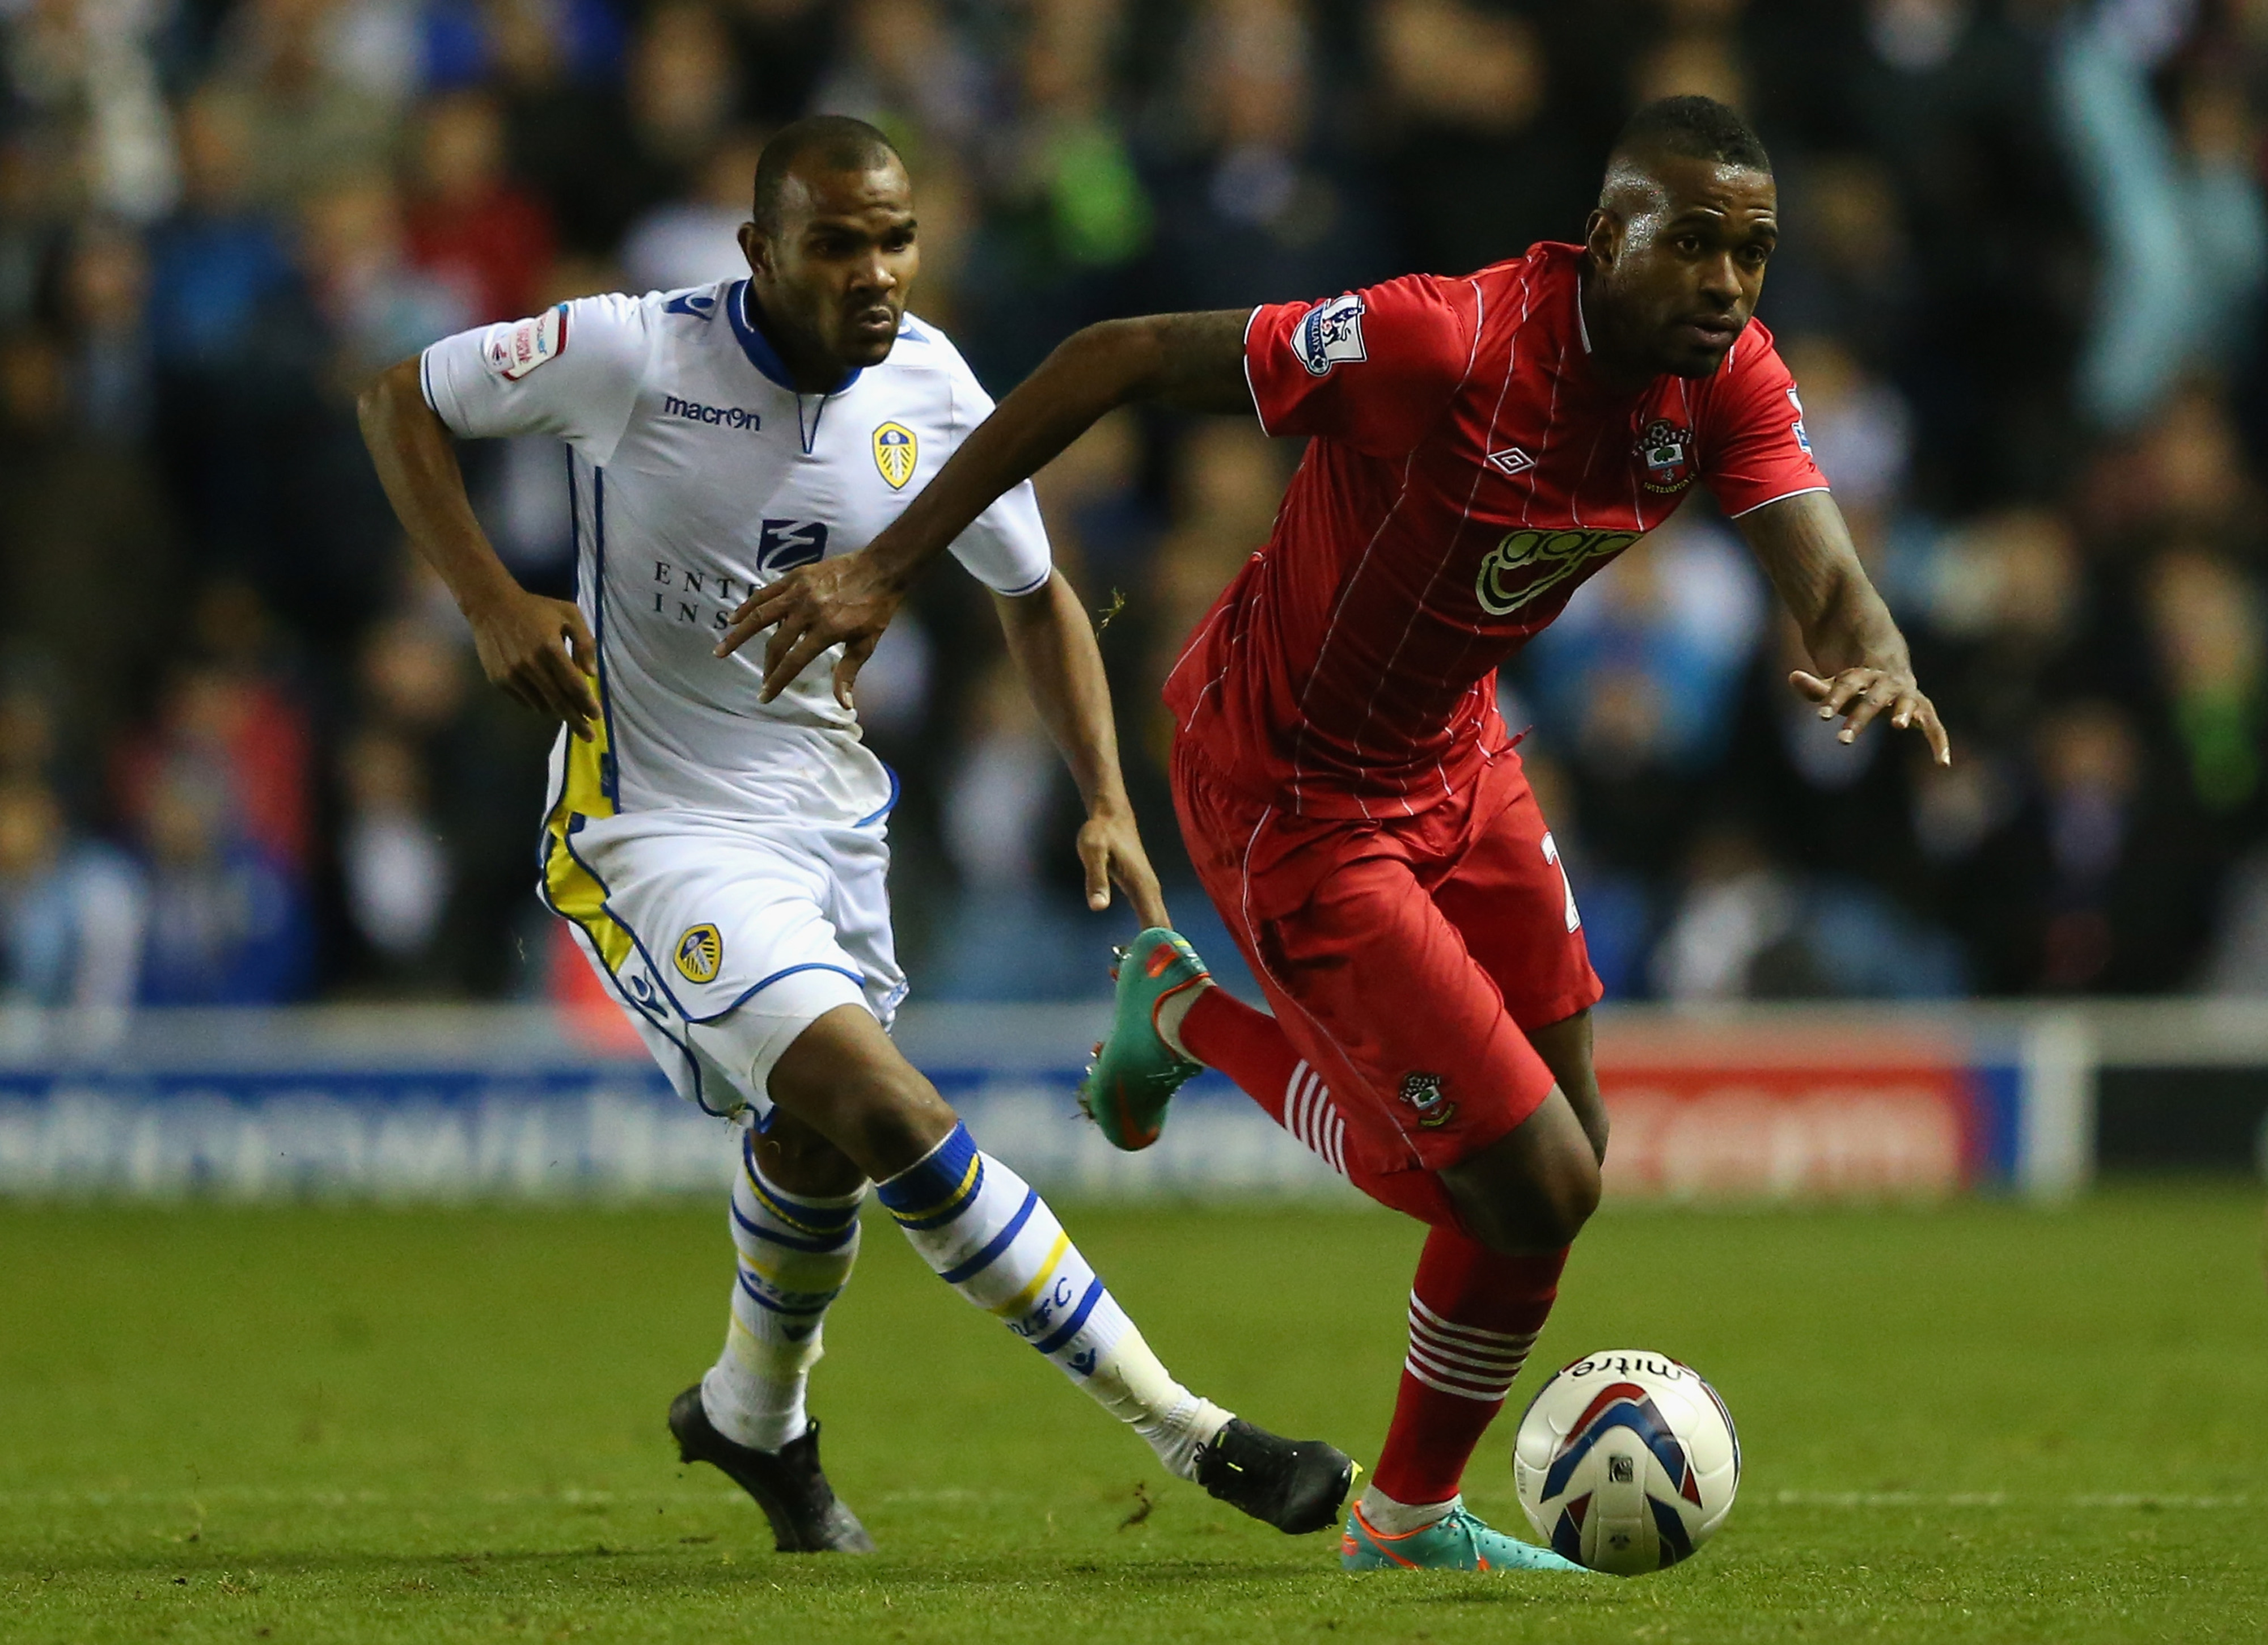 Rodolph Austin was second best in the battle of the Austin's at Turf Moor.